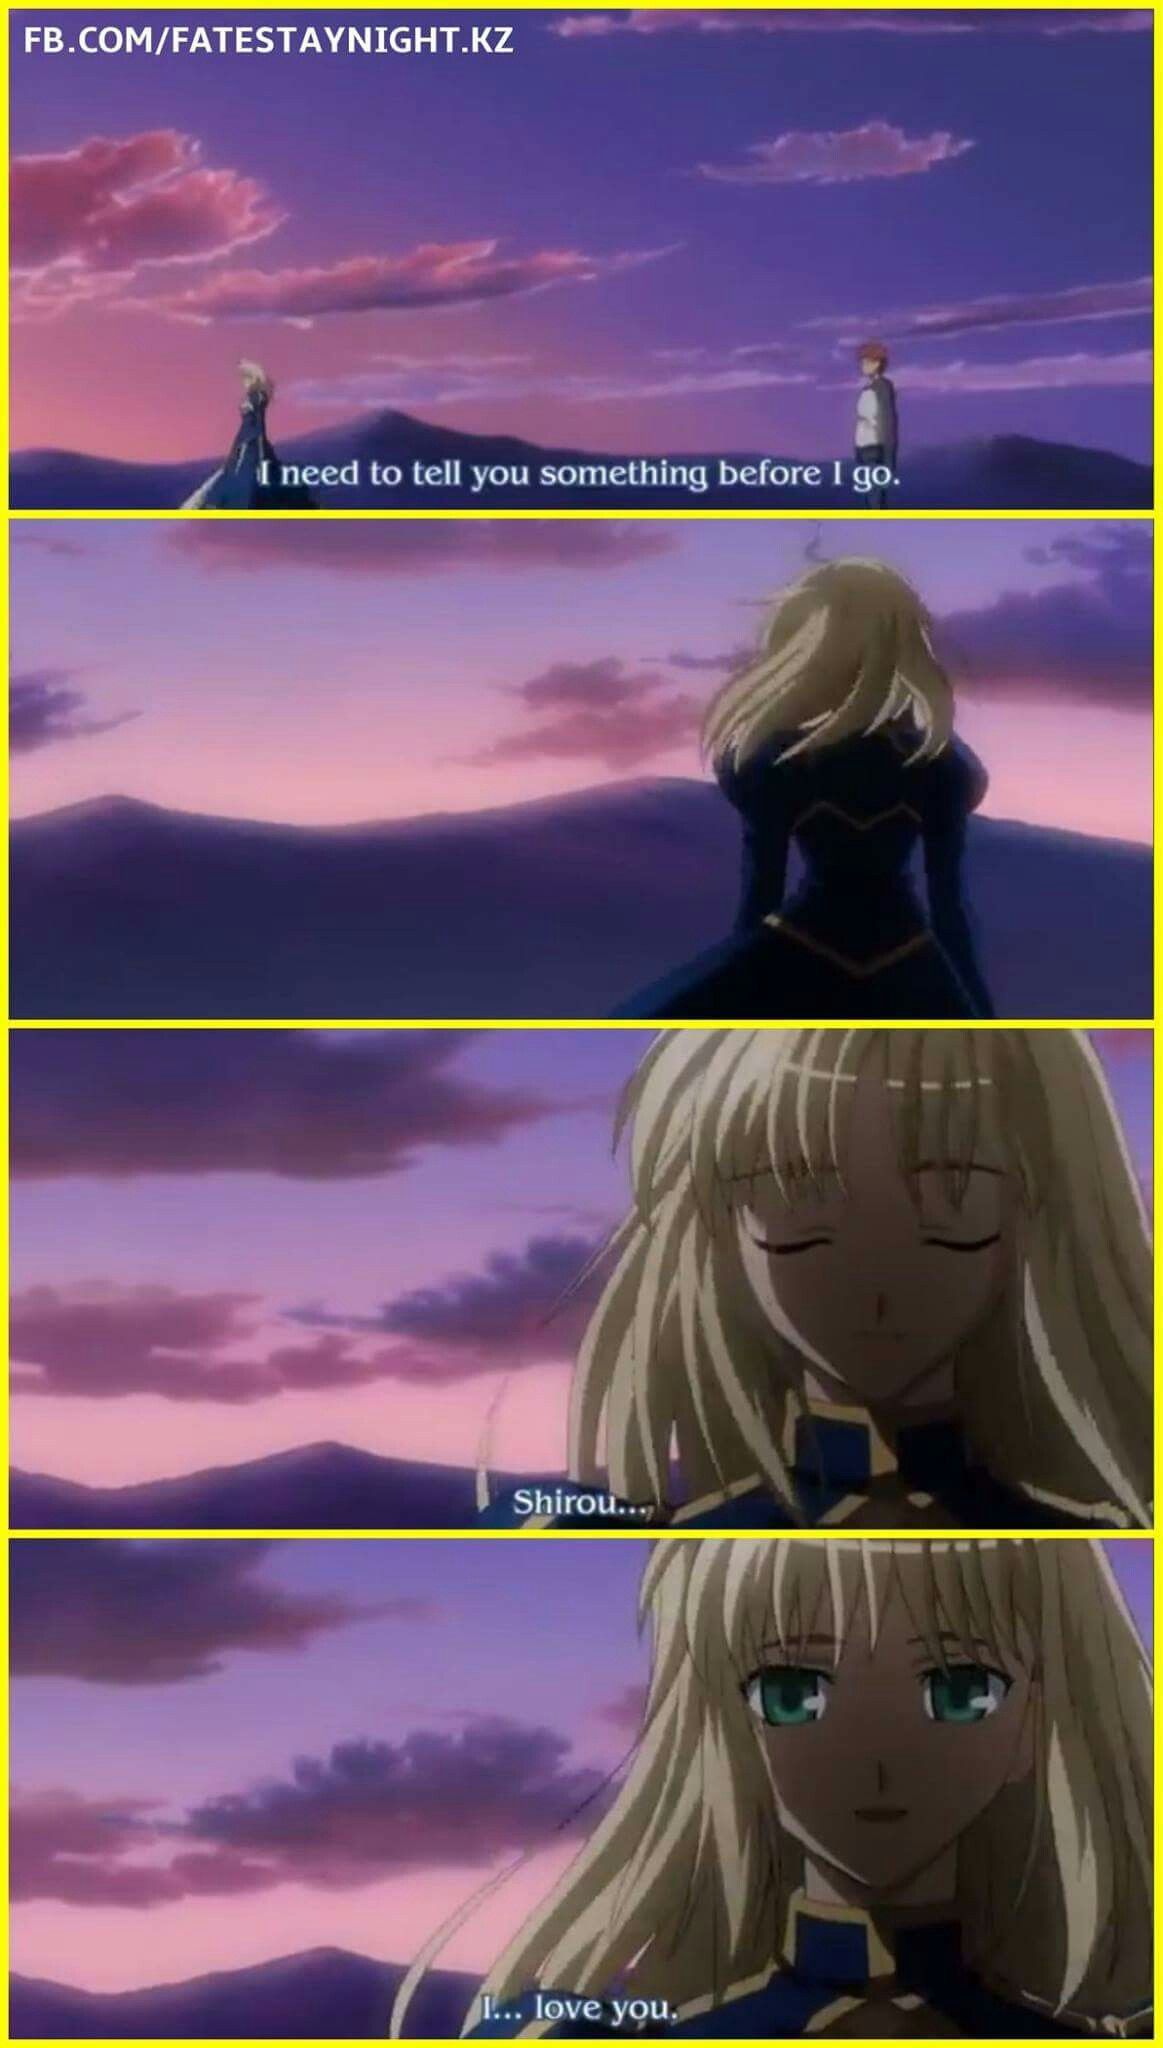 Pin by Anime King on Fate Fate stay night, Fate anime